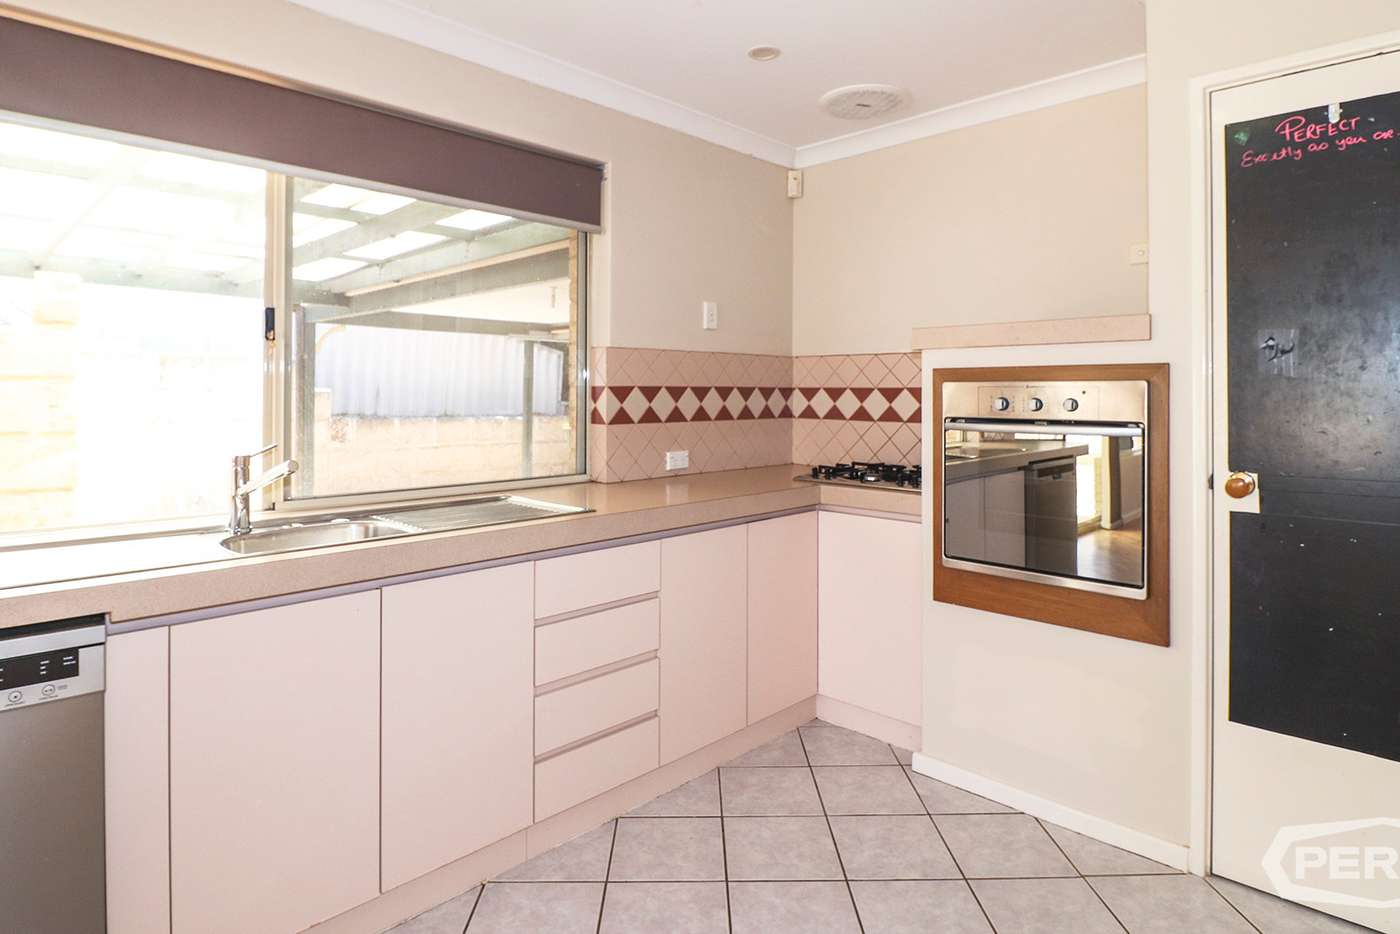 Sixth view of Homely house listing, 15 Malabor Mews, Halls Head WA 6210